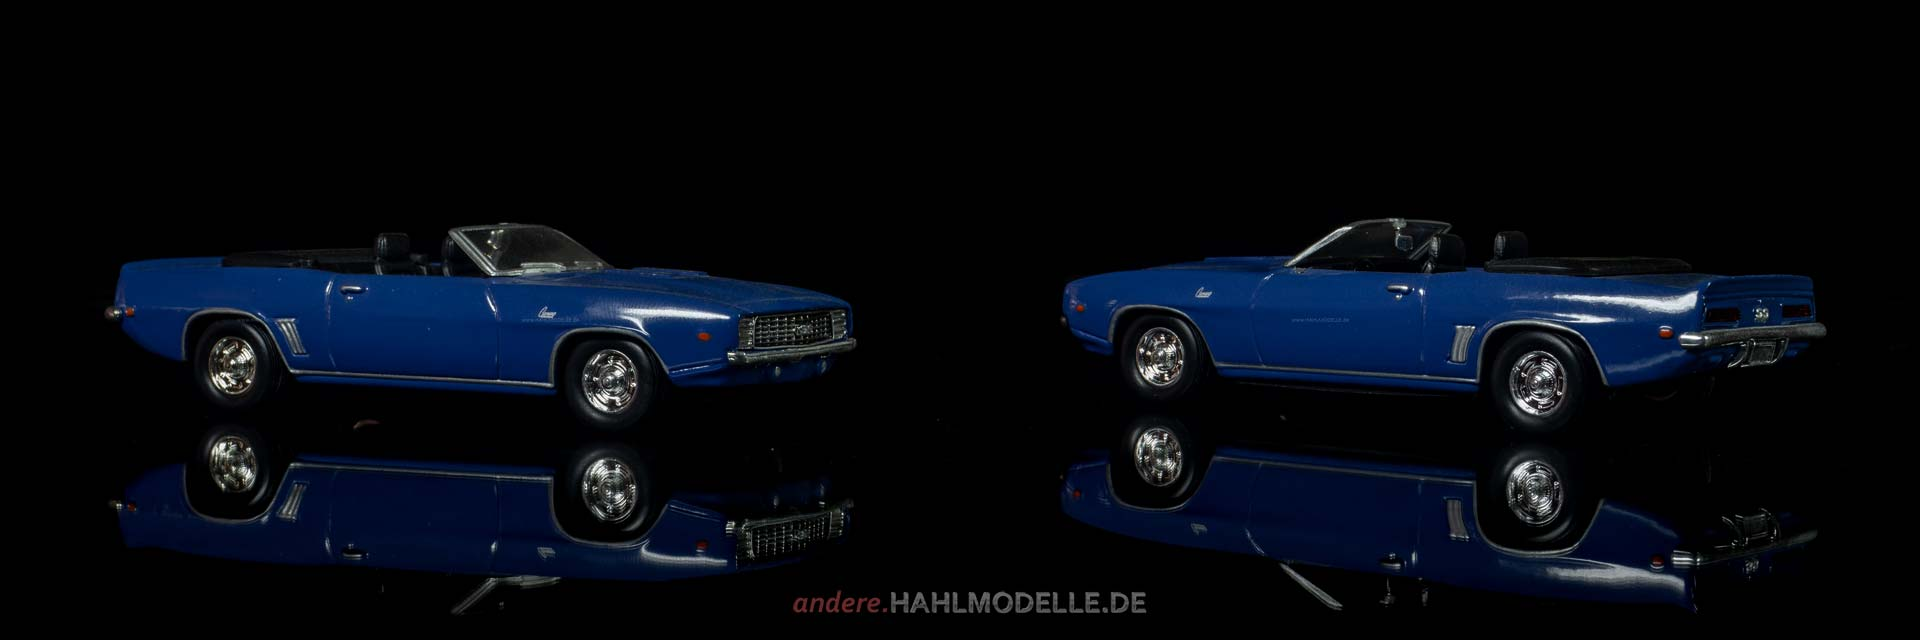 Chevrolet Camaro | Cabriolet | Ixo (Del Prado Car Collection) | 1:43 | www.andere.hahlmodelle.de